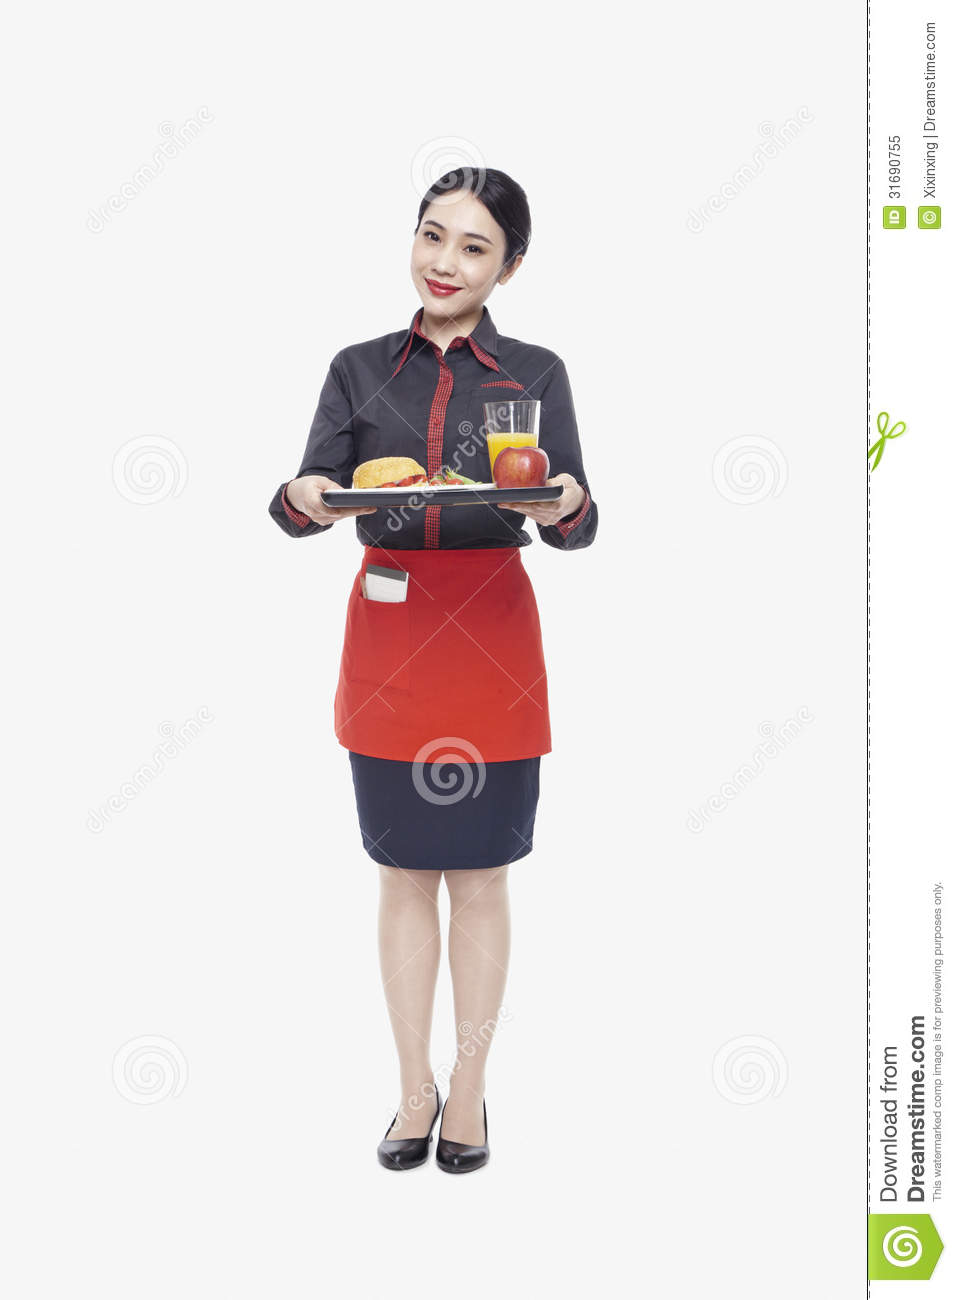 Young Waitress Carrying Tray With Food Studio Shot